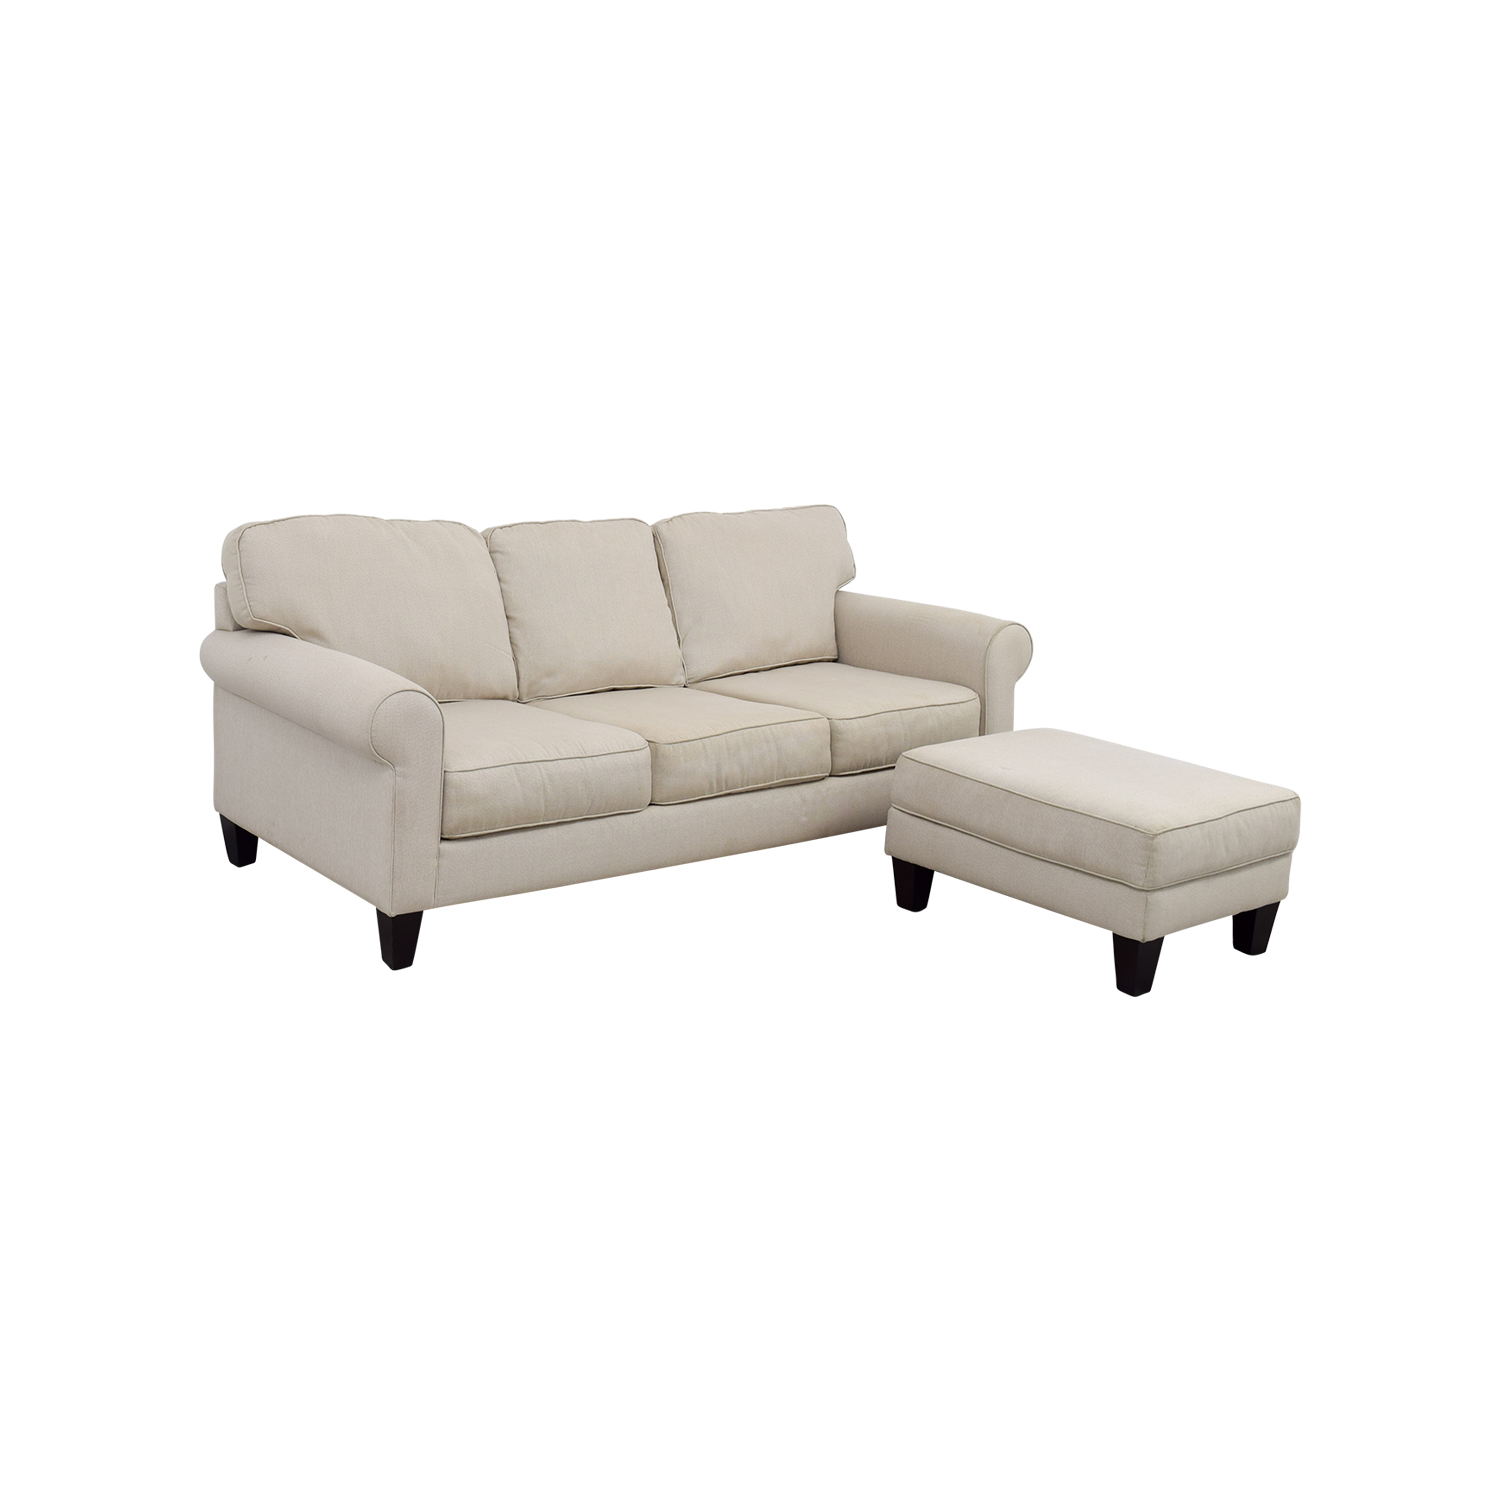 raymour and flanigan sofas 89 raymour amp flanigan raymour amp flanigan white 30368